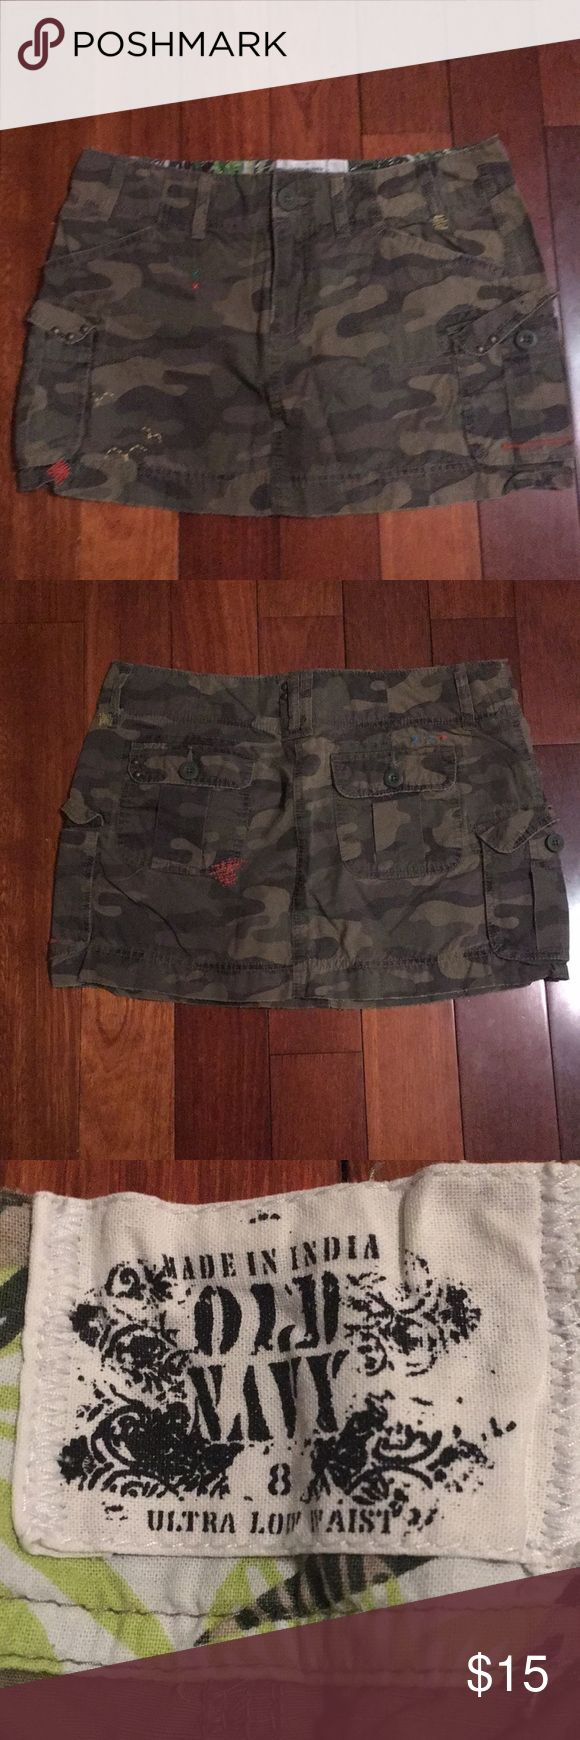 Size 8 Old Navy skirt Camo design with cargo side pockets. A few unique stitched designs and embellishment as shown in pictures. Excellent condition. Cargo type material. 100% cotton. Old Navy Skirts